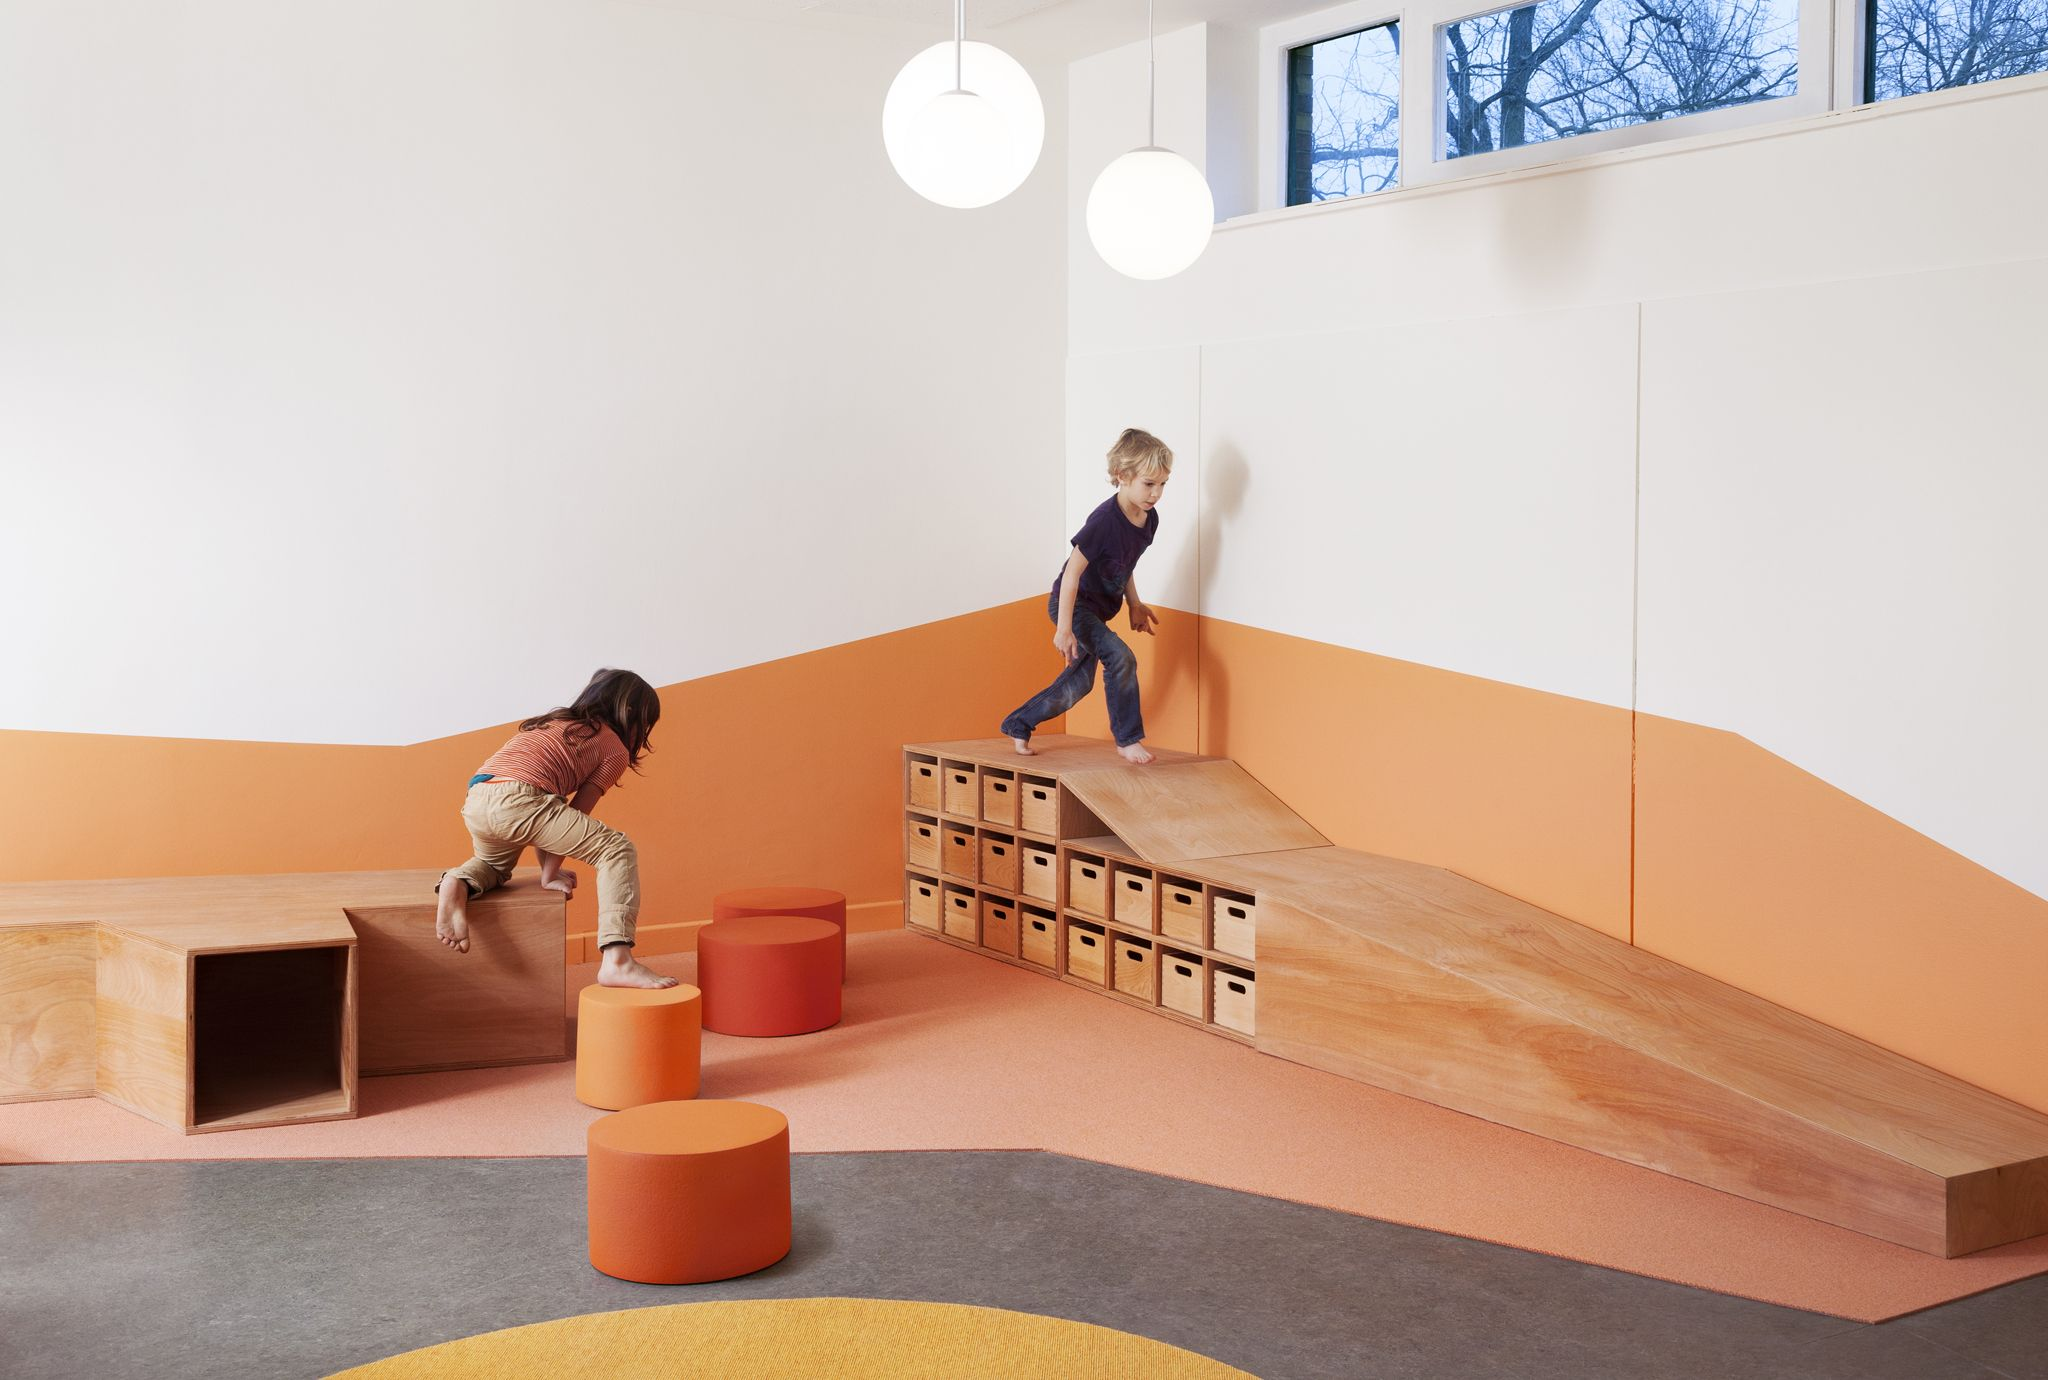 Sinnewandel kindergarten in berlin designed by baukind and for Raumgestaltung schule